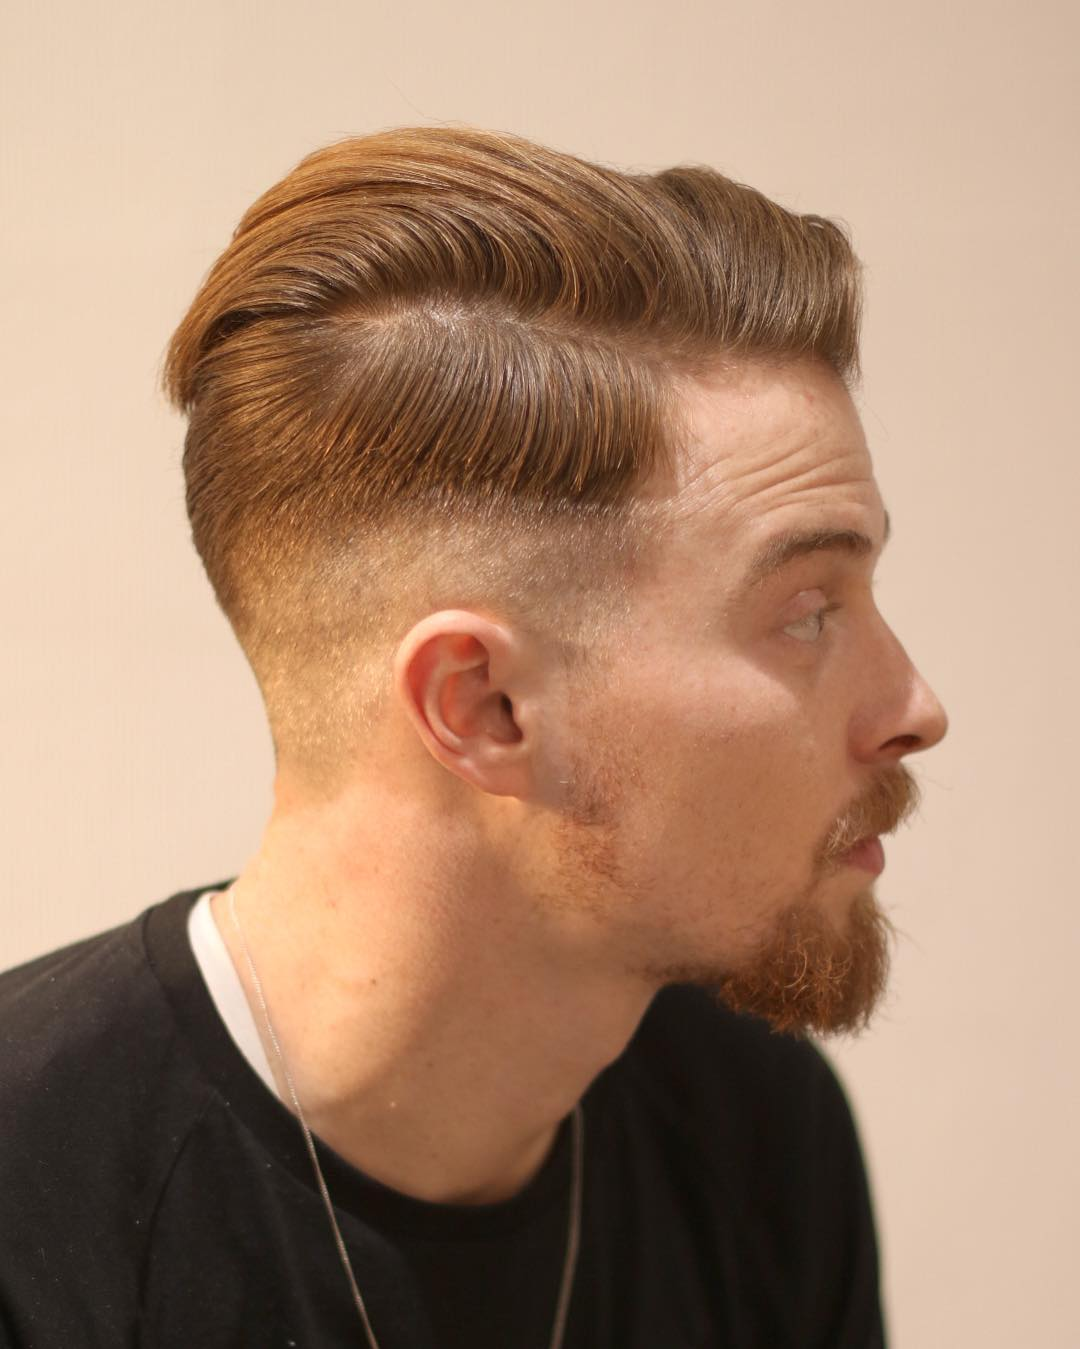 Cool Side Part Hairstyle For Men Step